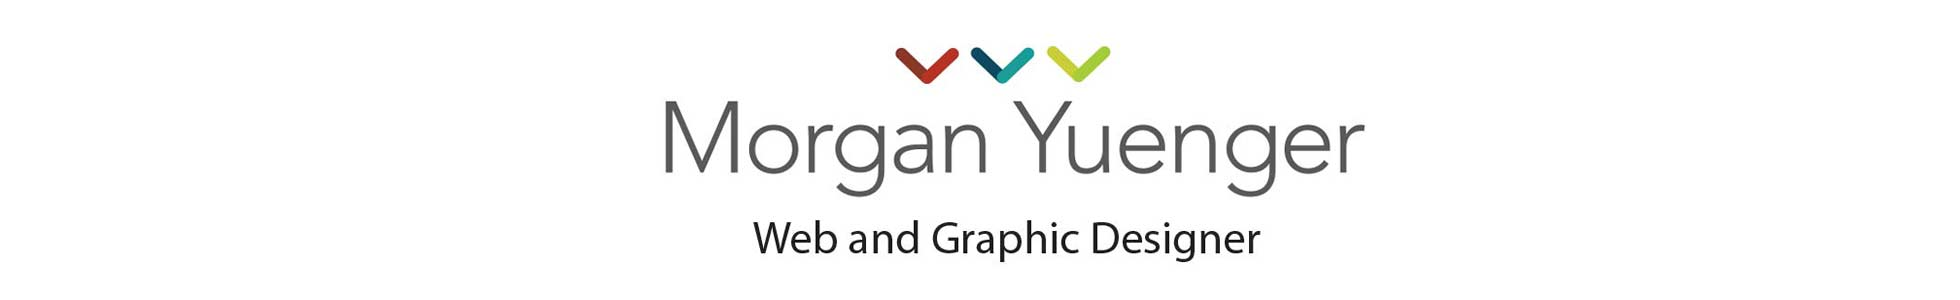 Morgan Yuenger Graphic Designer, Web Designer for Hire